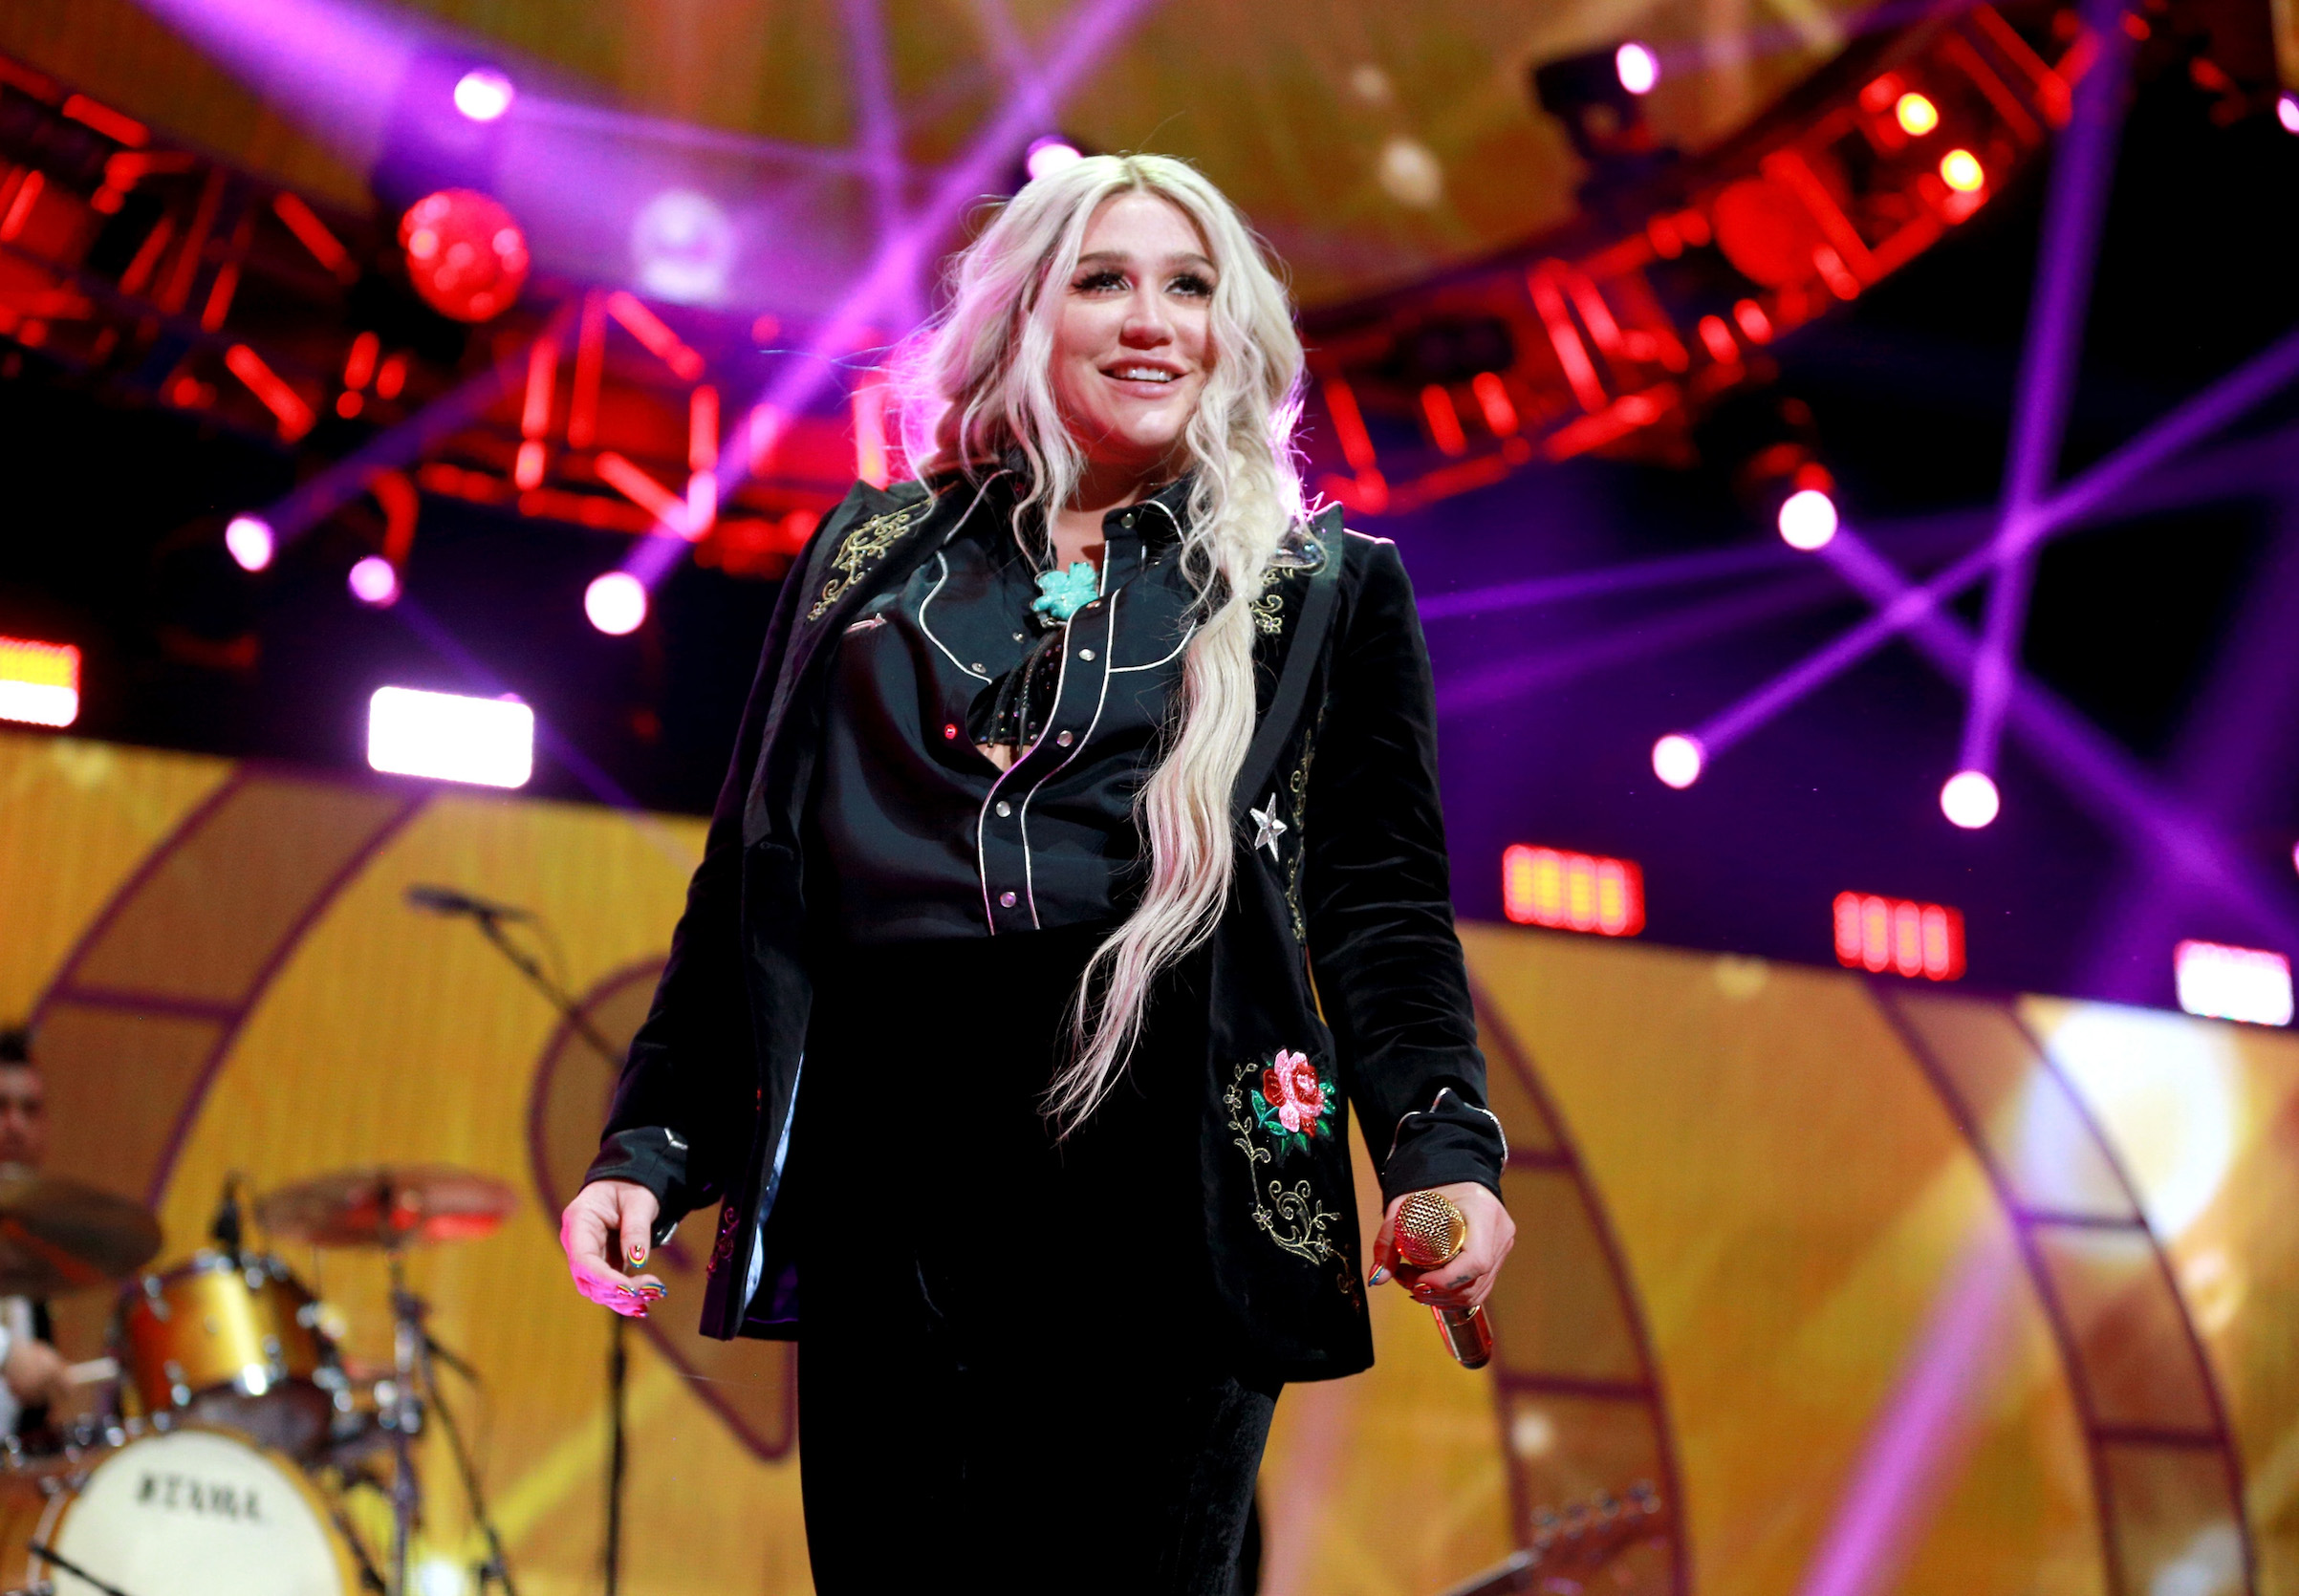 Kesha performs onstage during the 2017 iHeartRadio Music Festival on Sept. 23, 2017 in Las Vegas, Nevada.